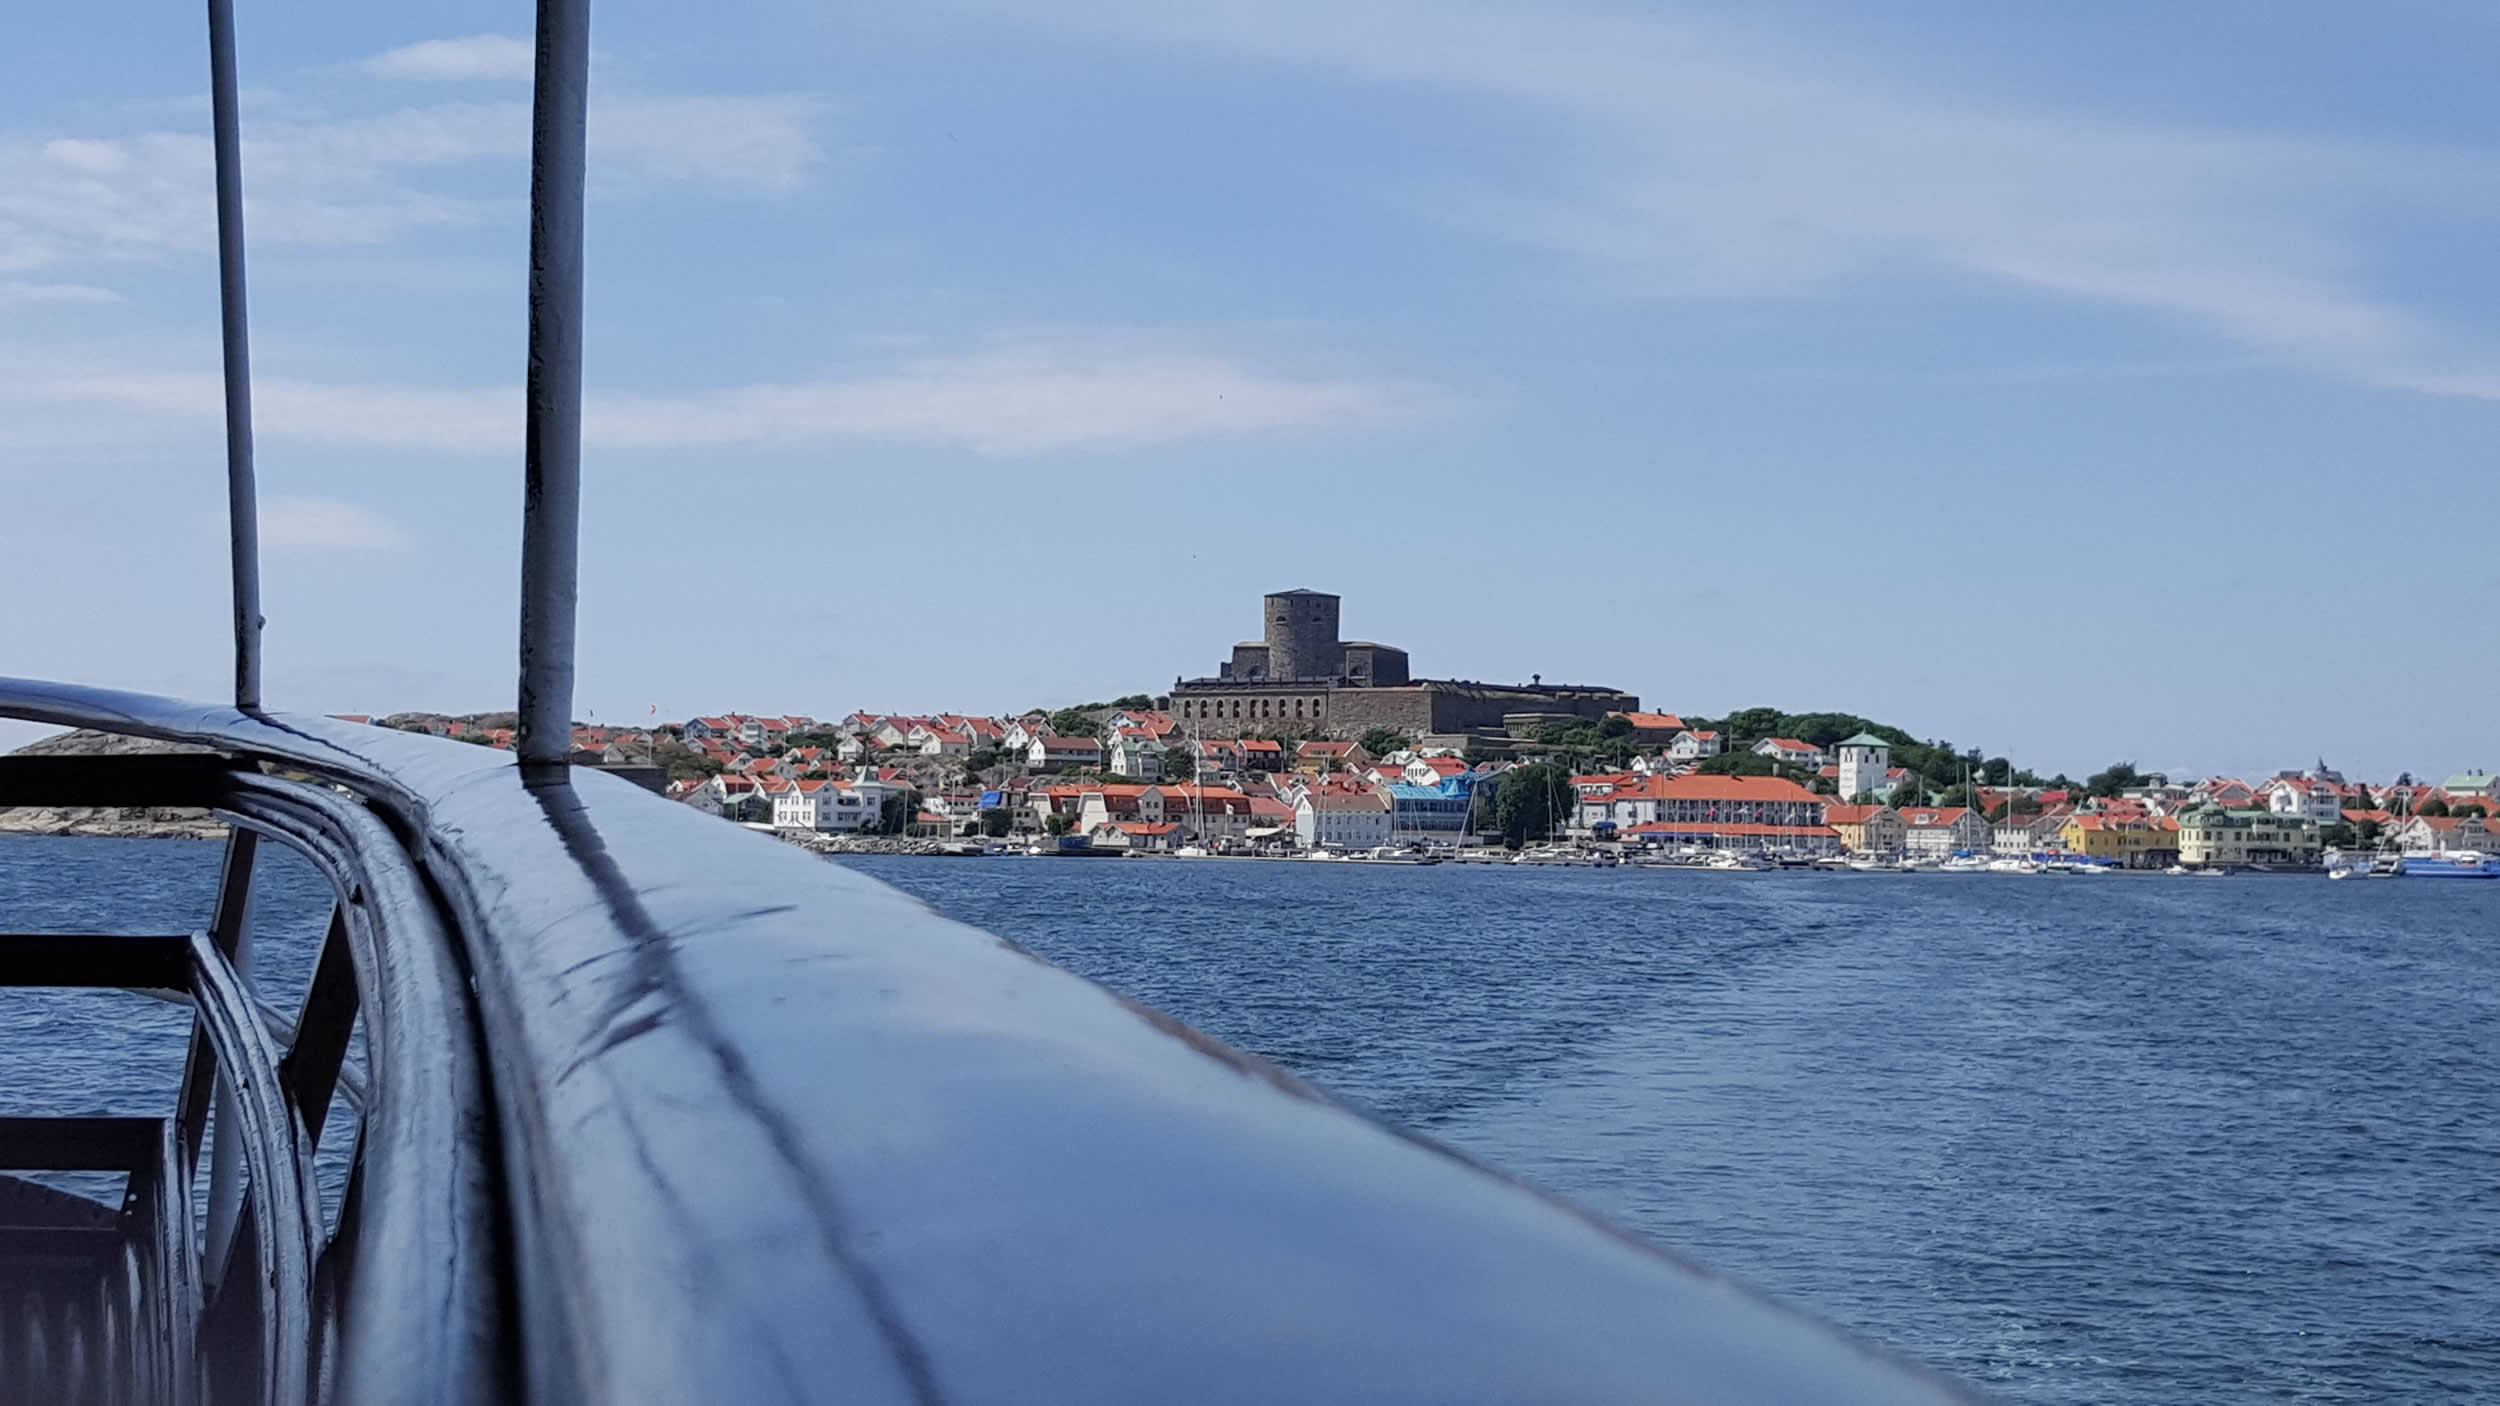 Marstrand via Öckerö